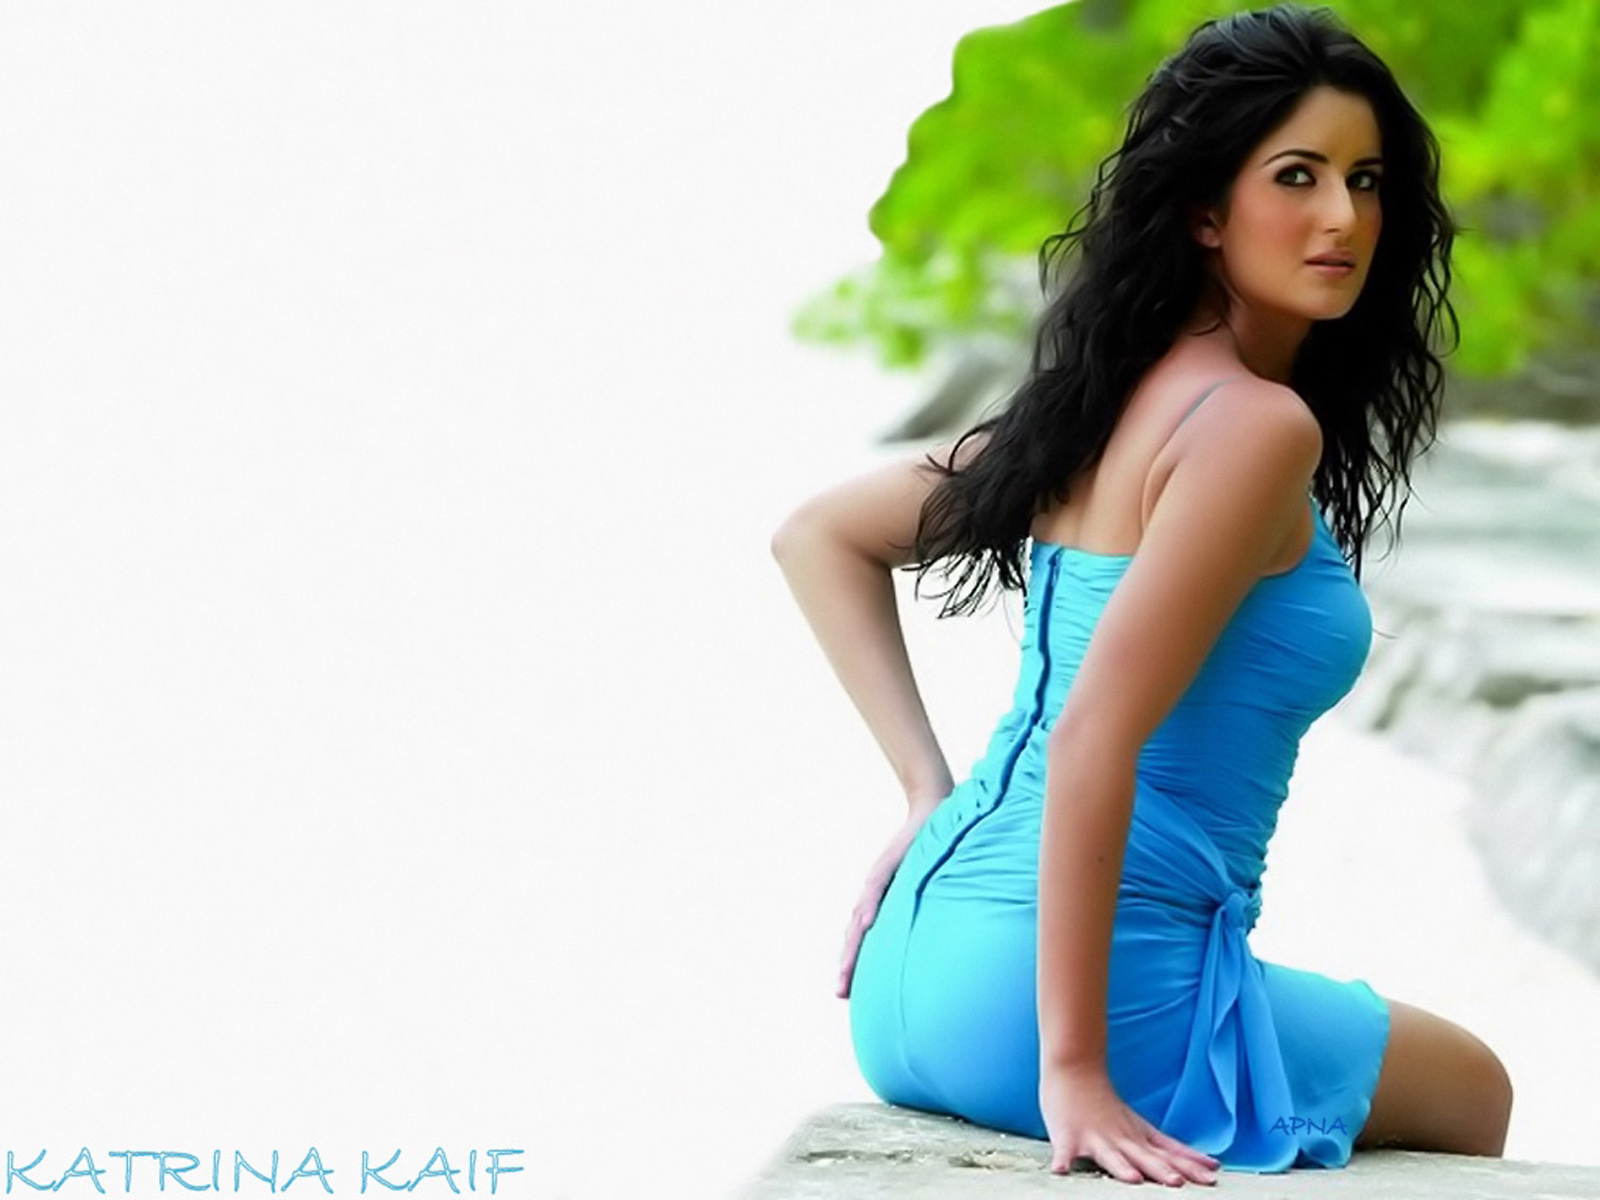 katrina-kaif-hot-and-sex-pussy